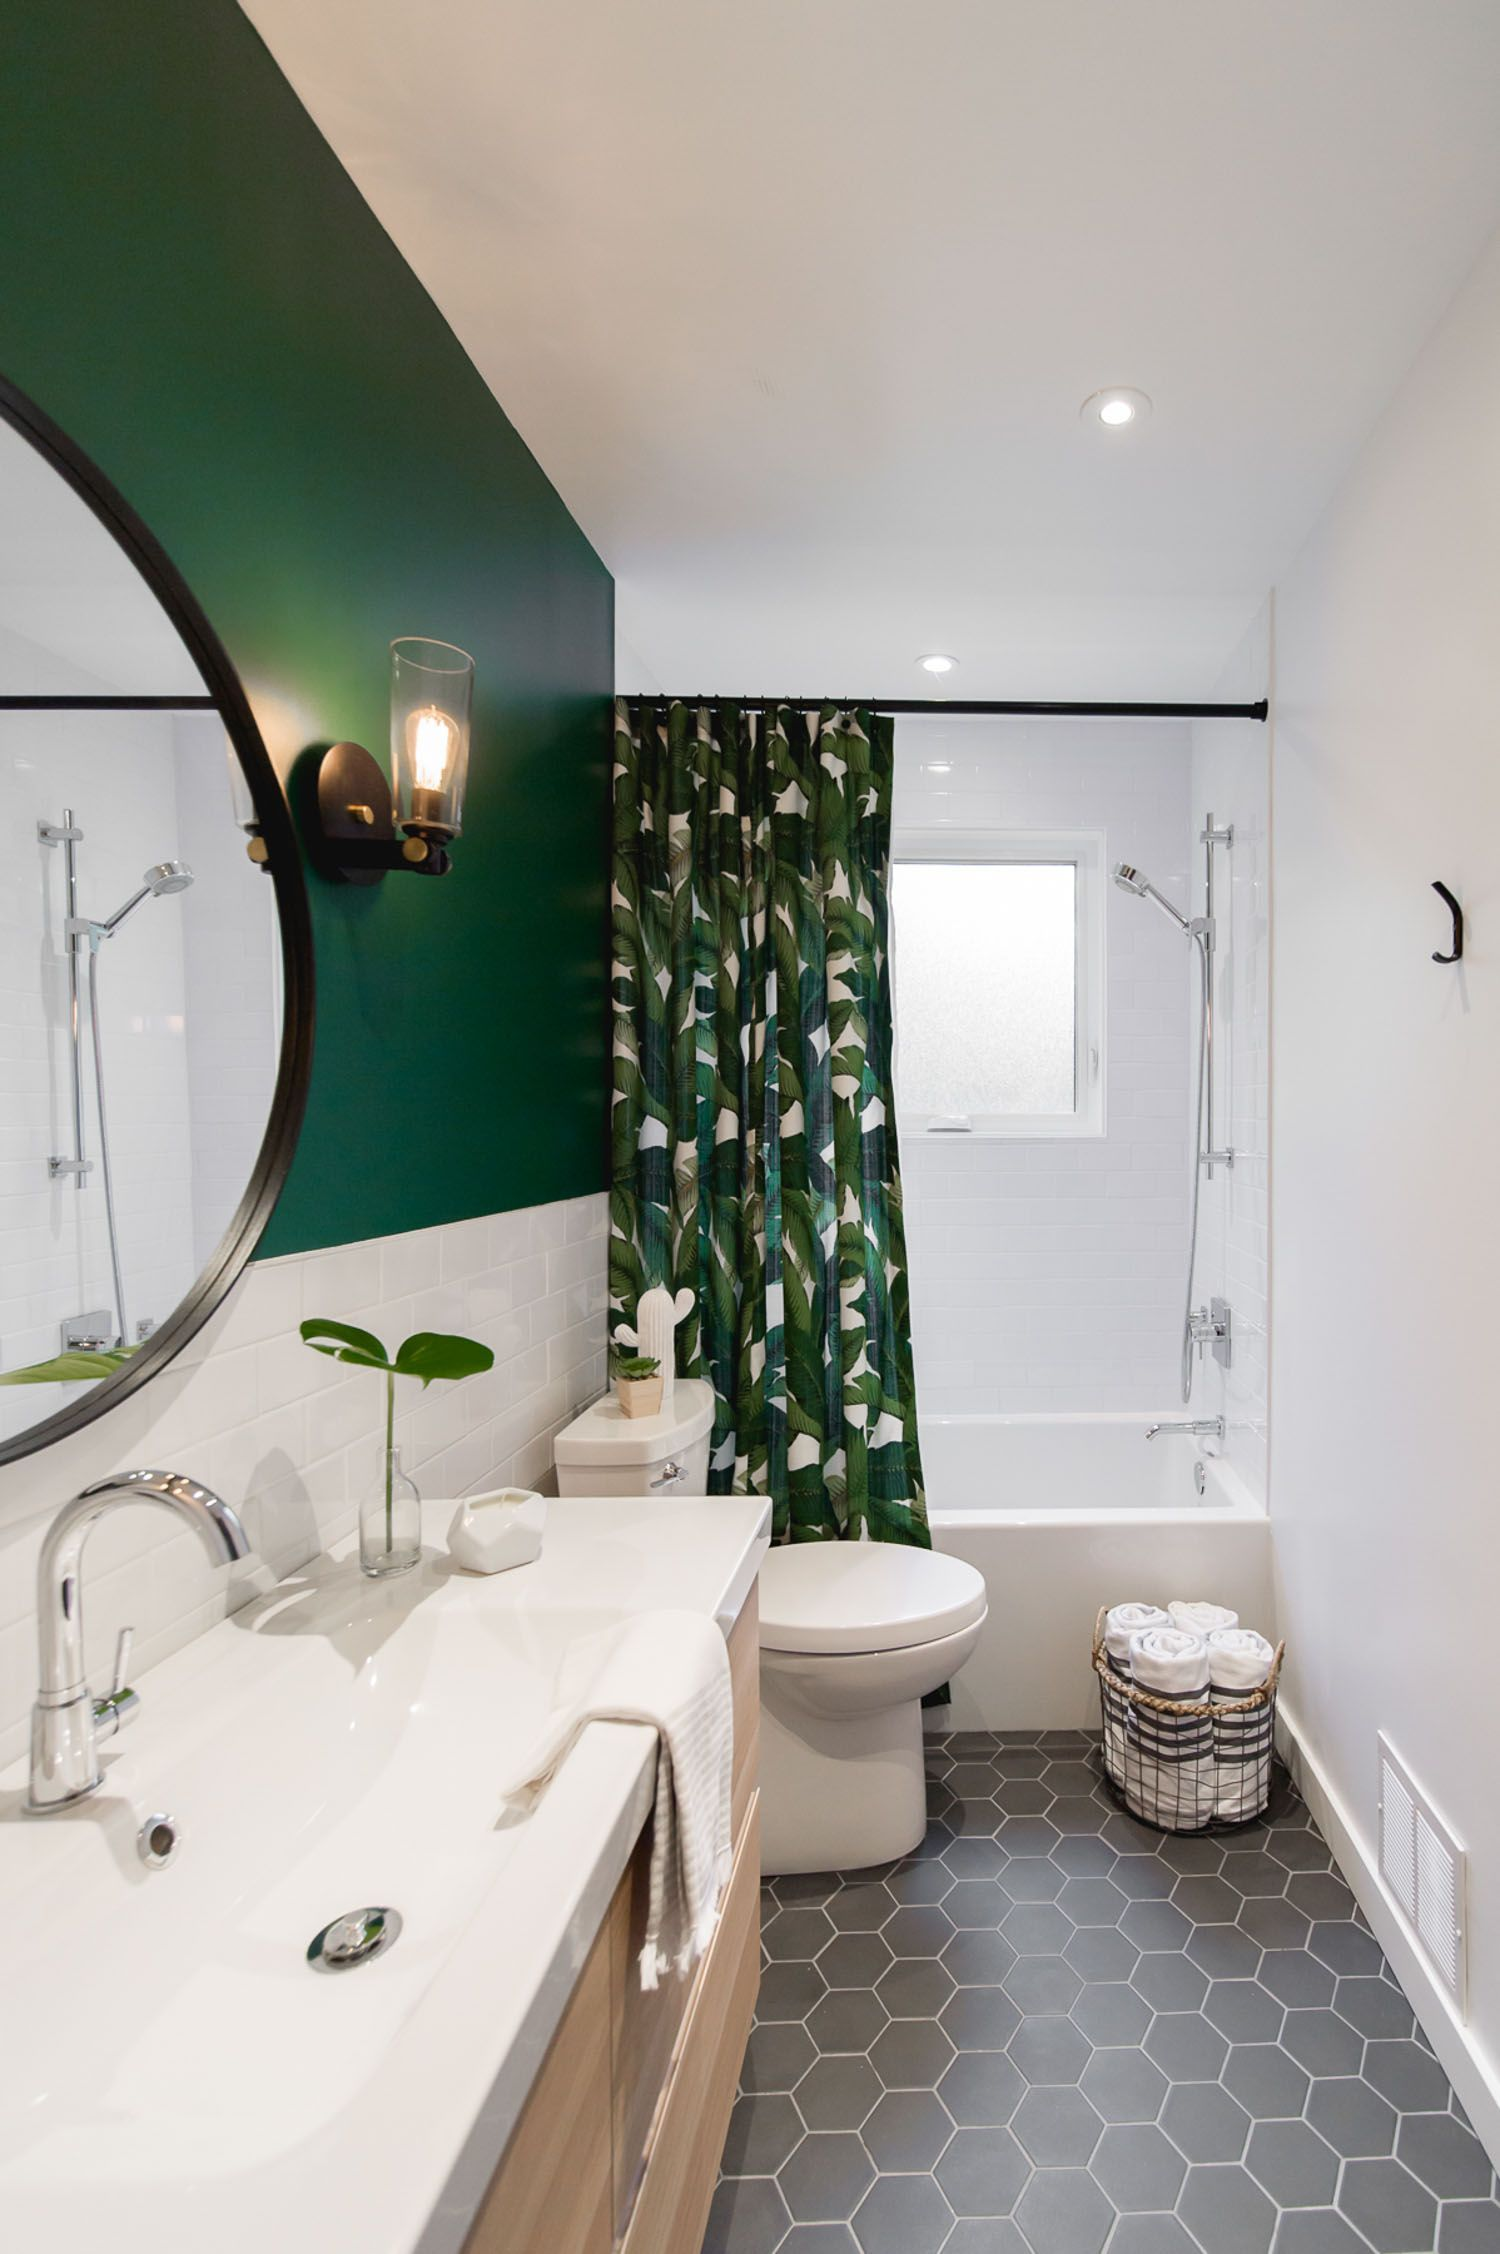 31 Shower Room Paint Color Styles That Always Look Fresh and Clean #whitebathroompaint